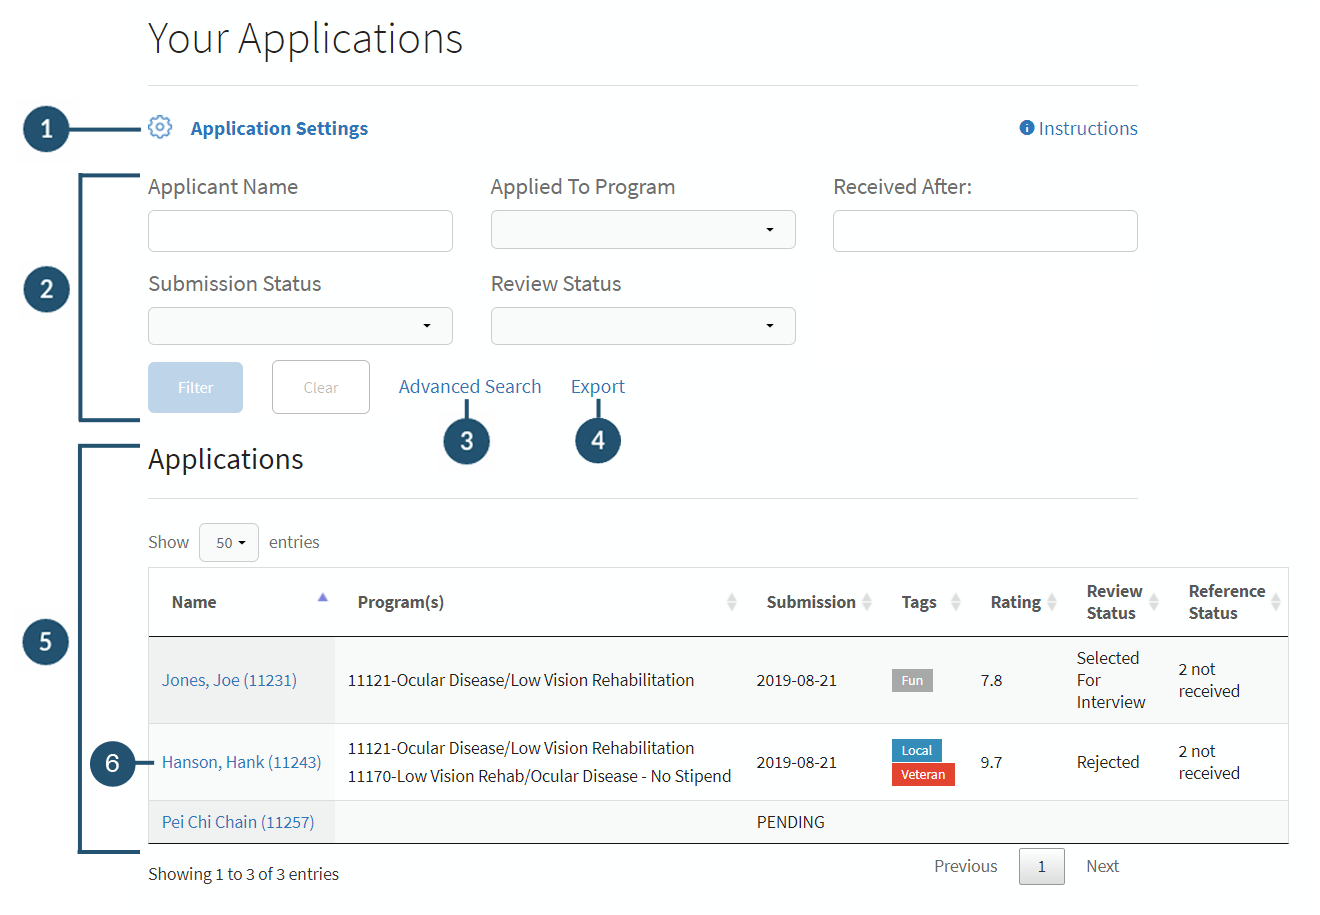 Overview of Your Applications page